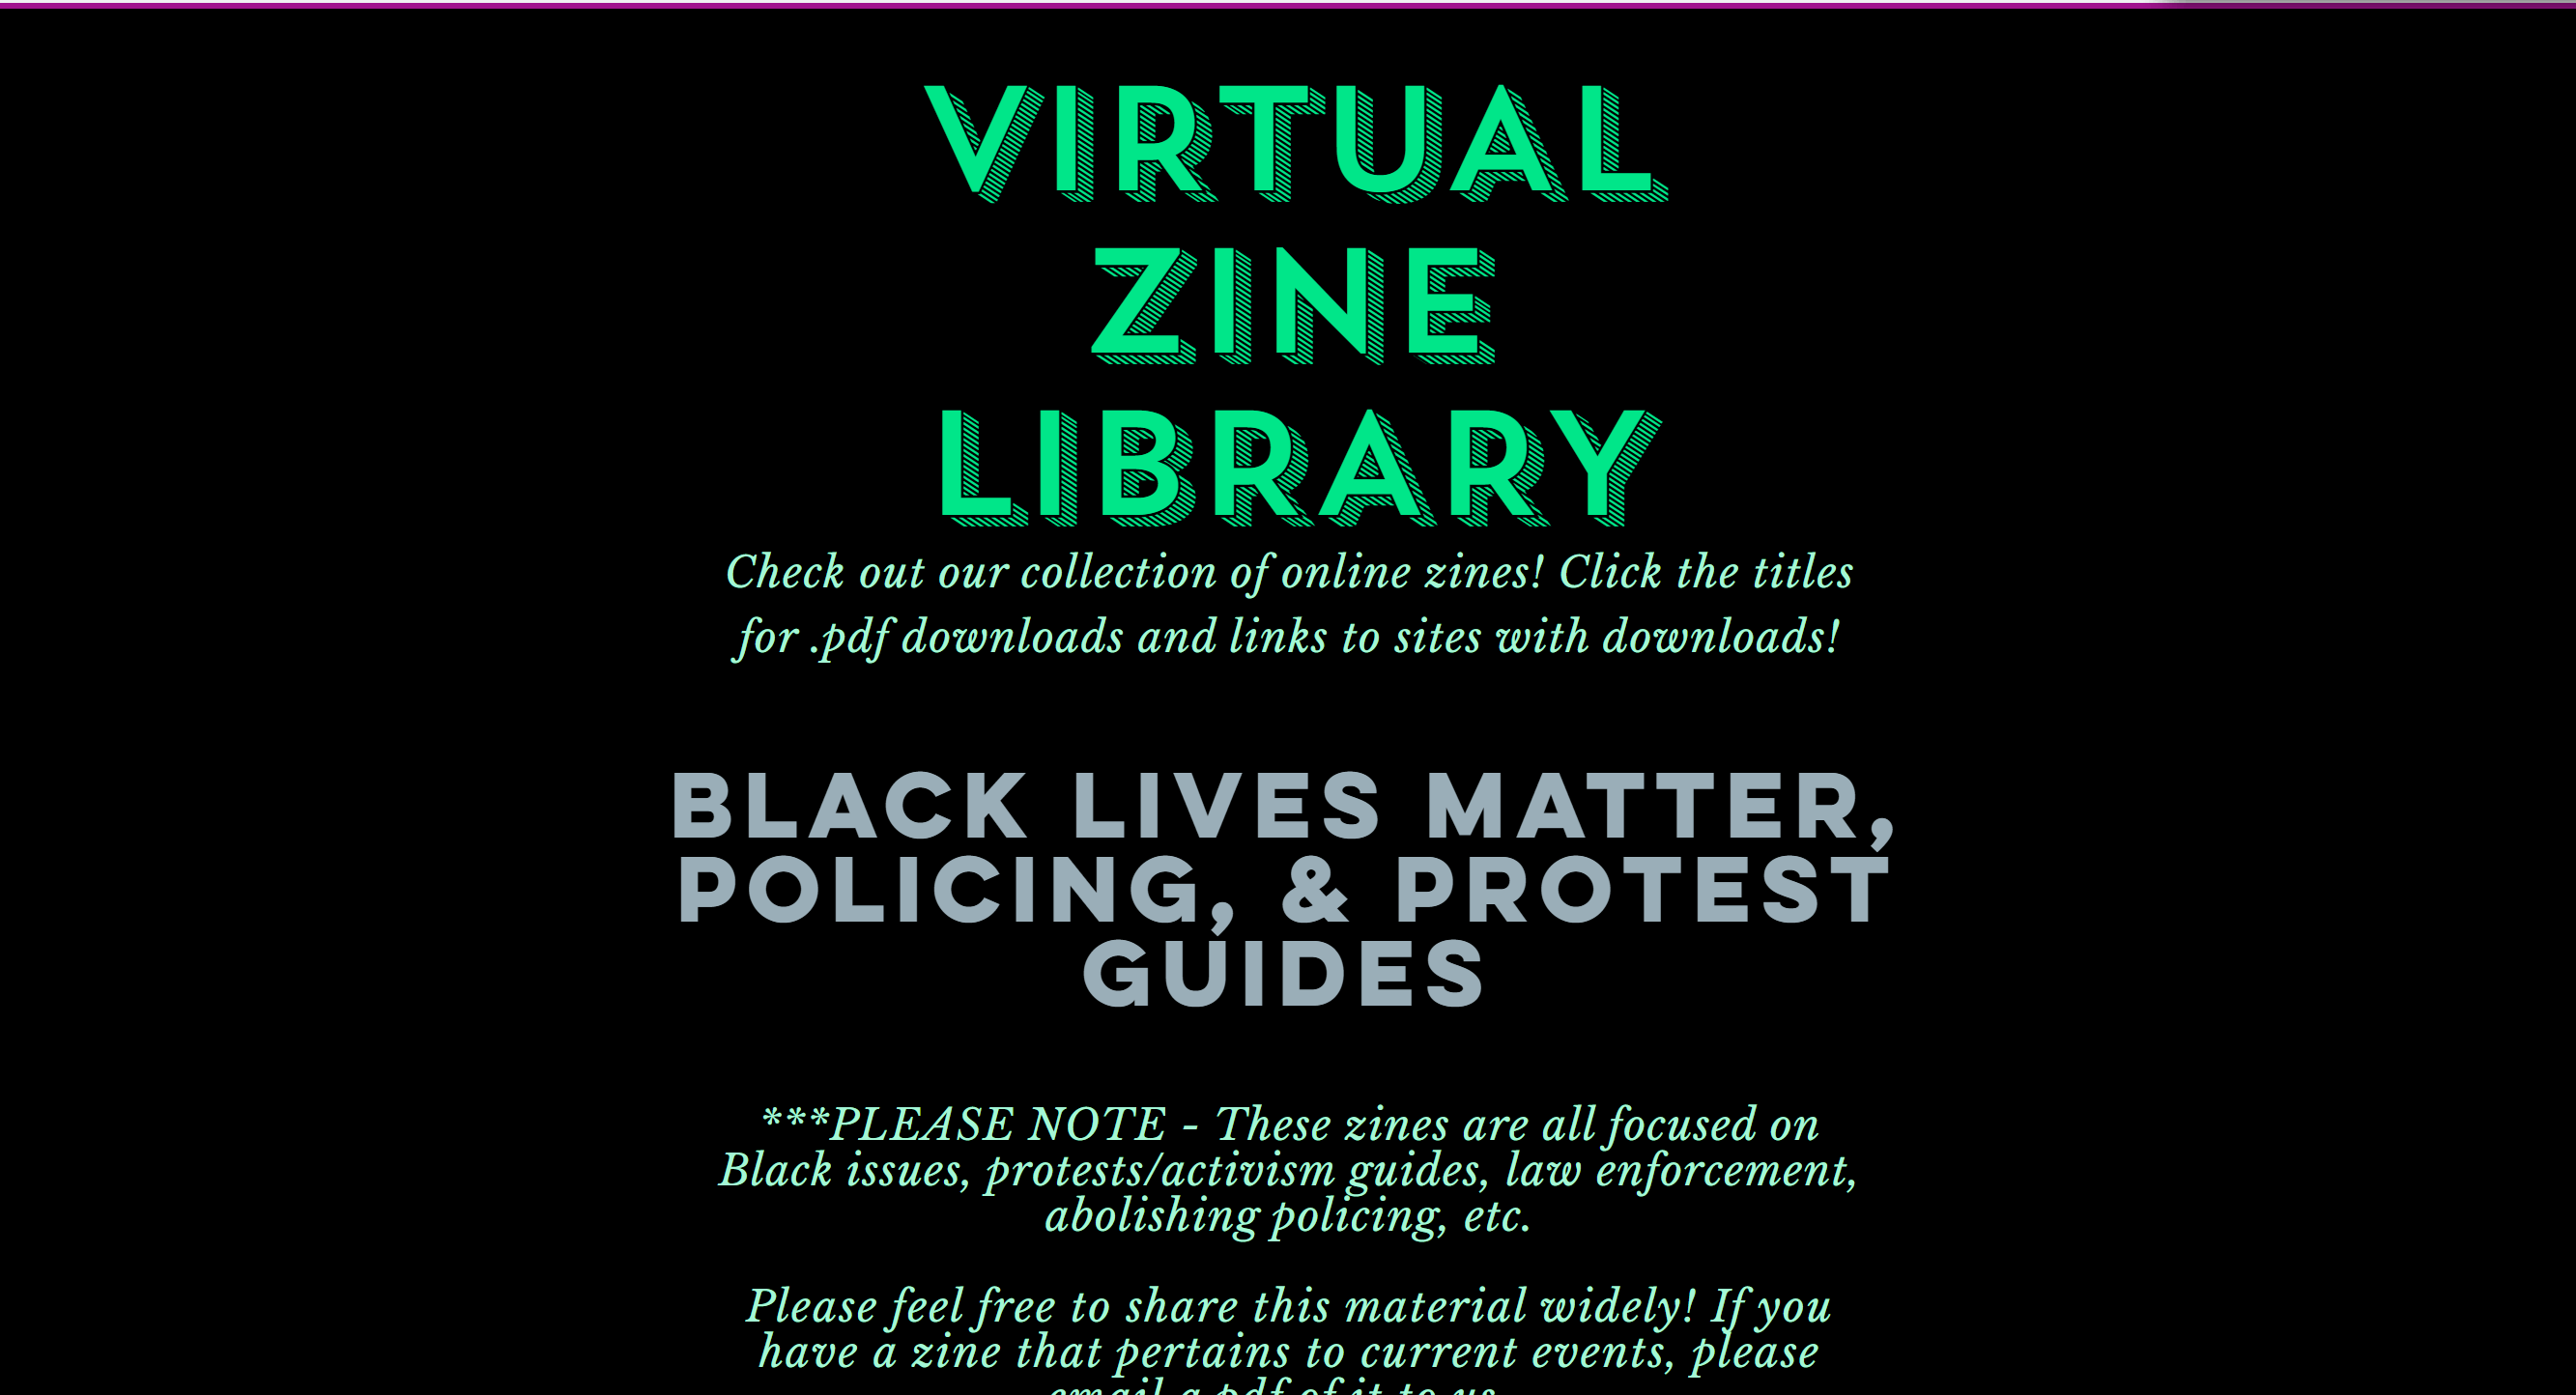 Homepage of the Sherwood Forest Virtual Zine Library